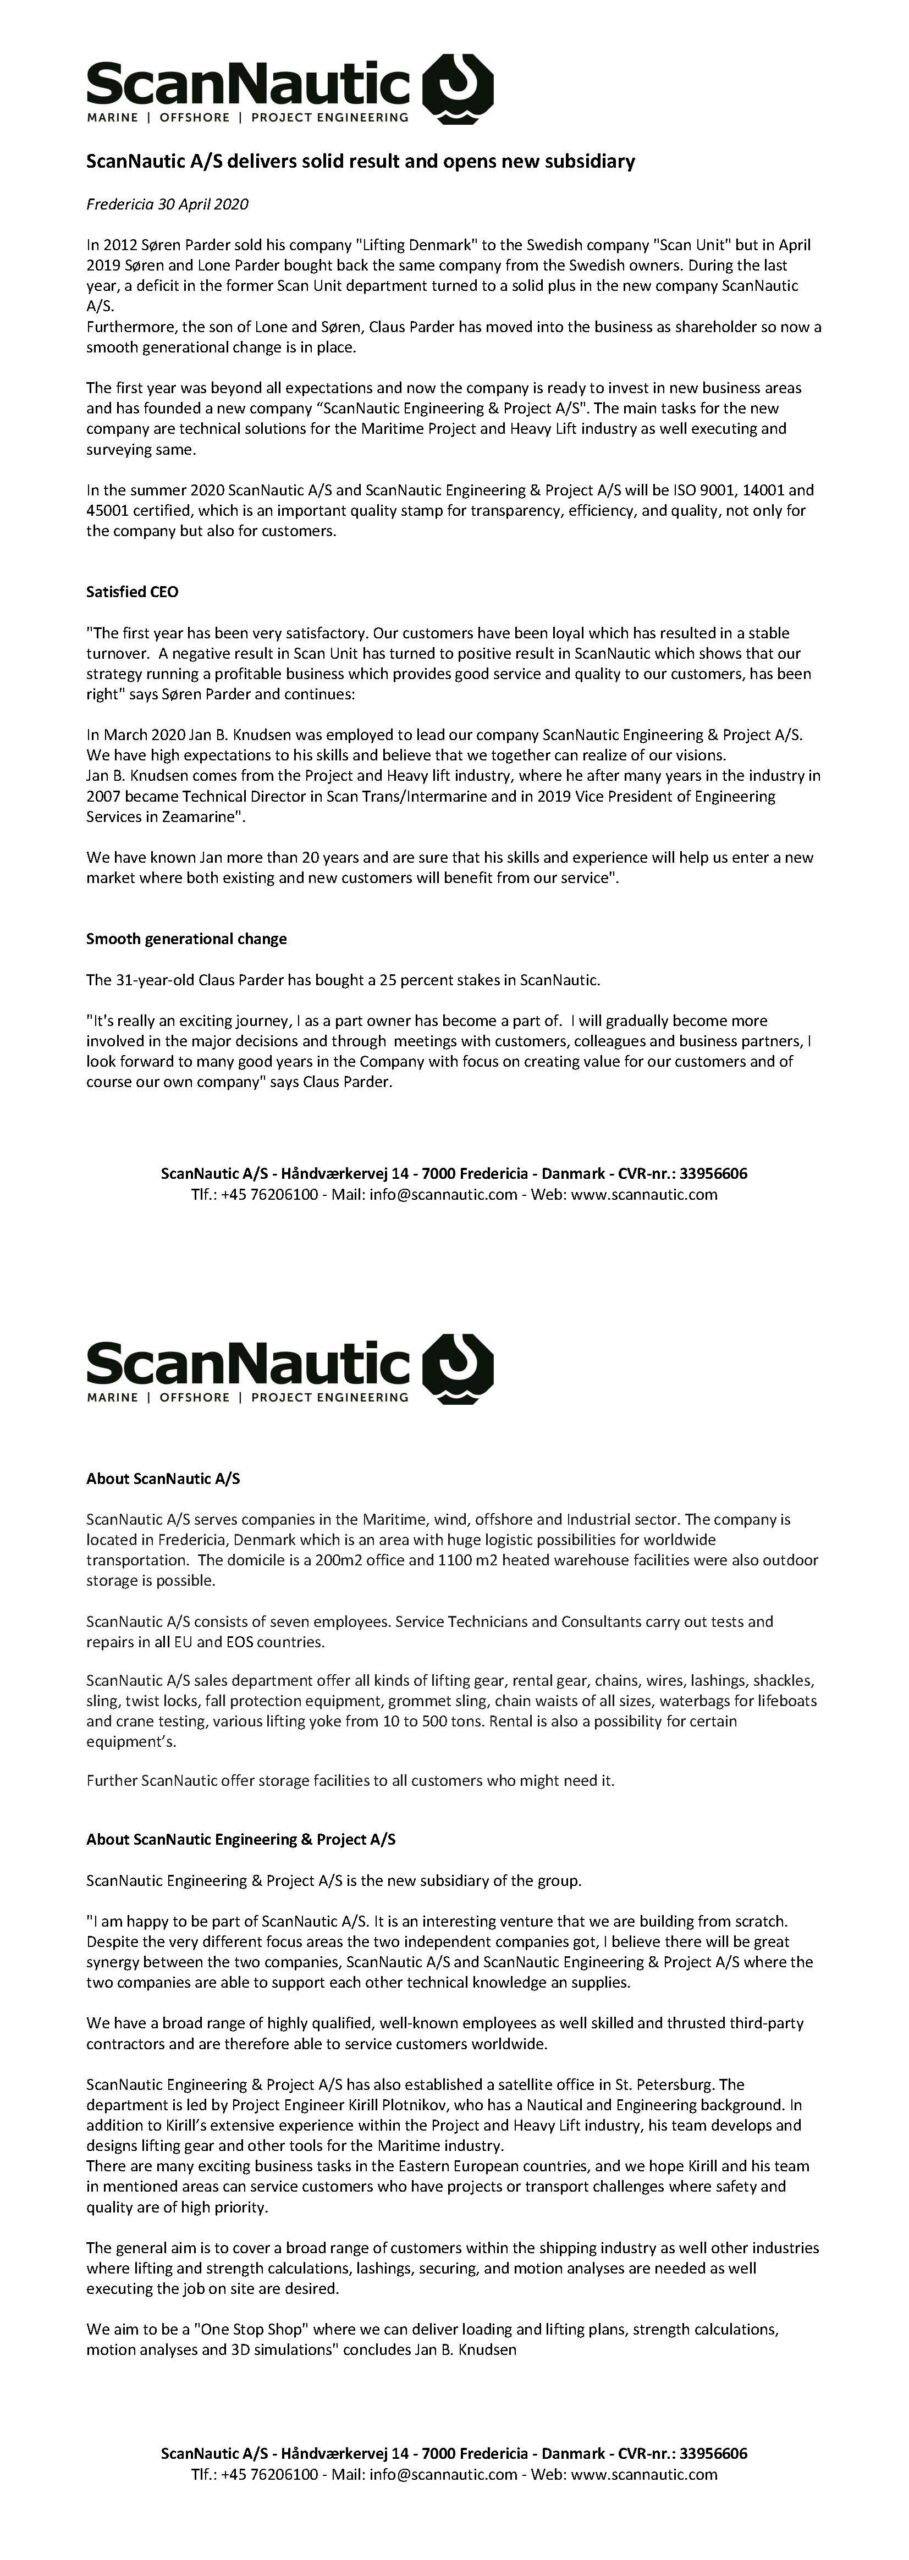 Scannautic press release April 2020